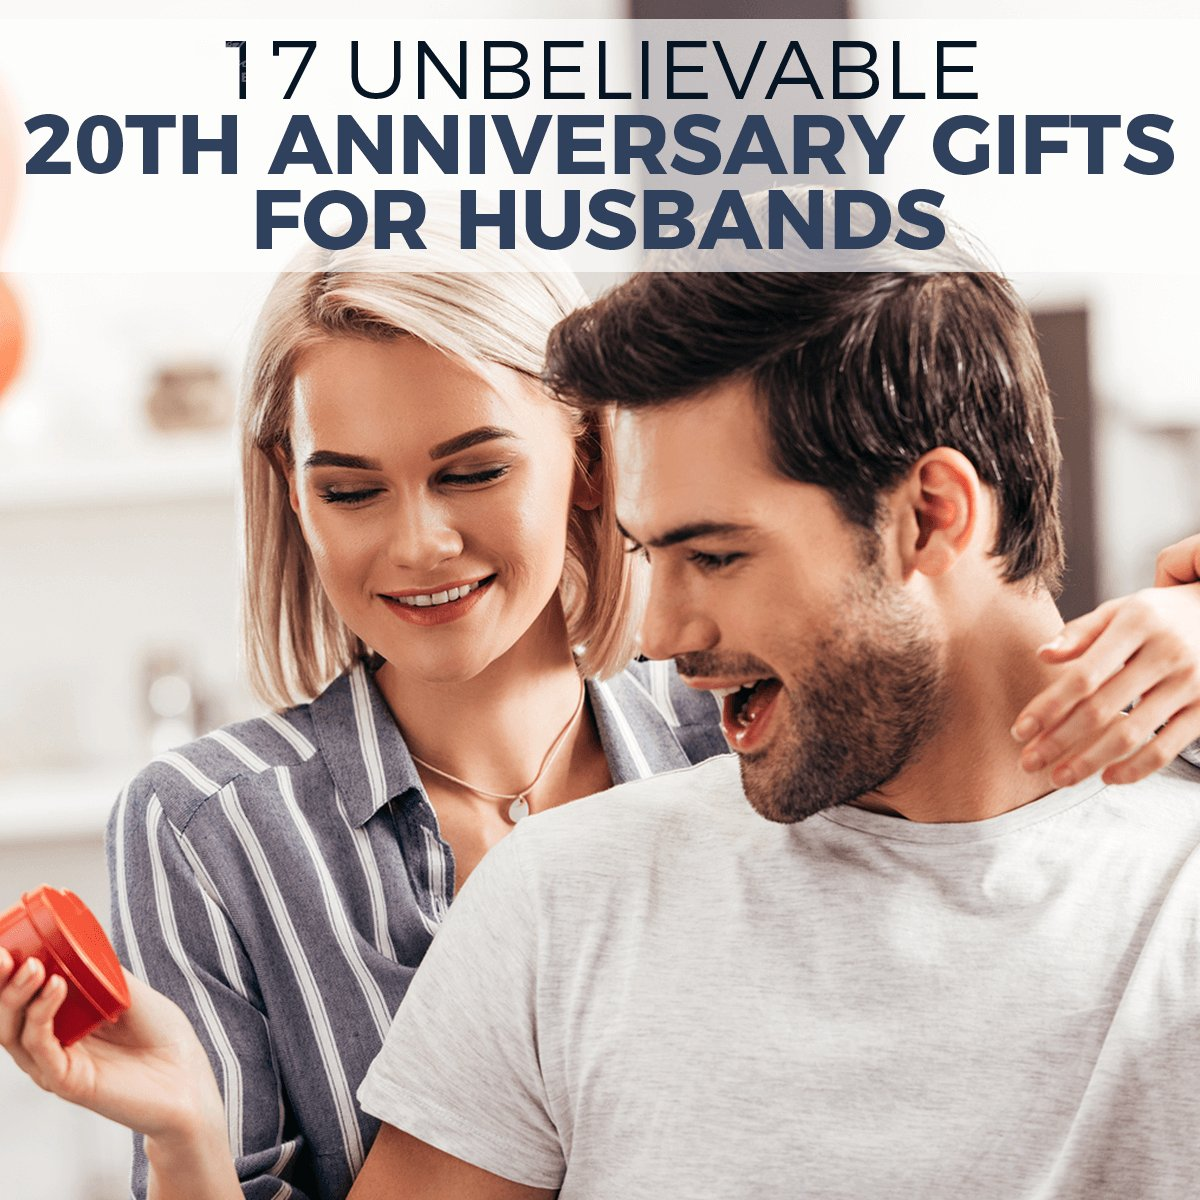 Anniversary Gifts For Husband: 17 Unbelievable 20th Anniversary Gifts For Husbands